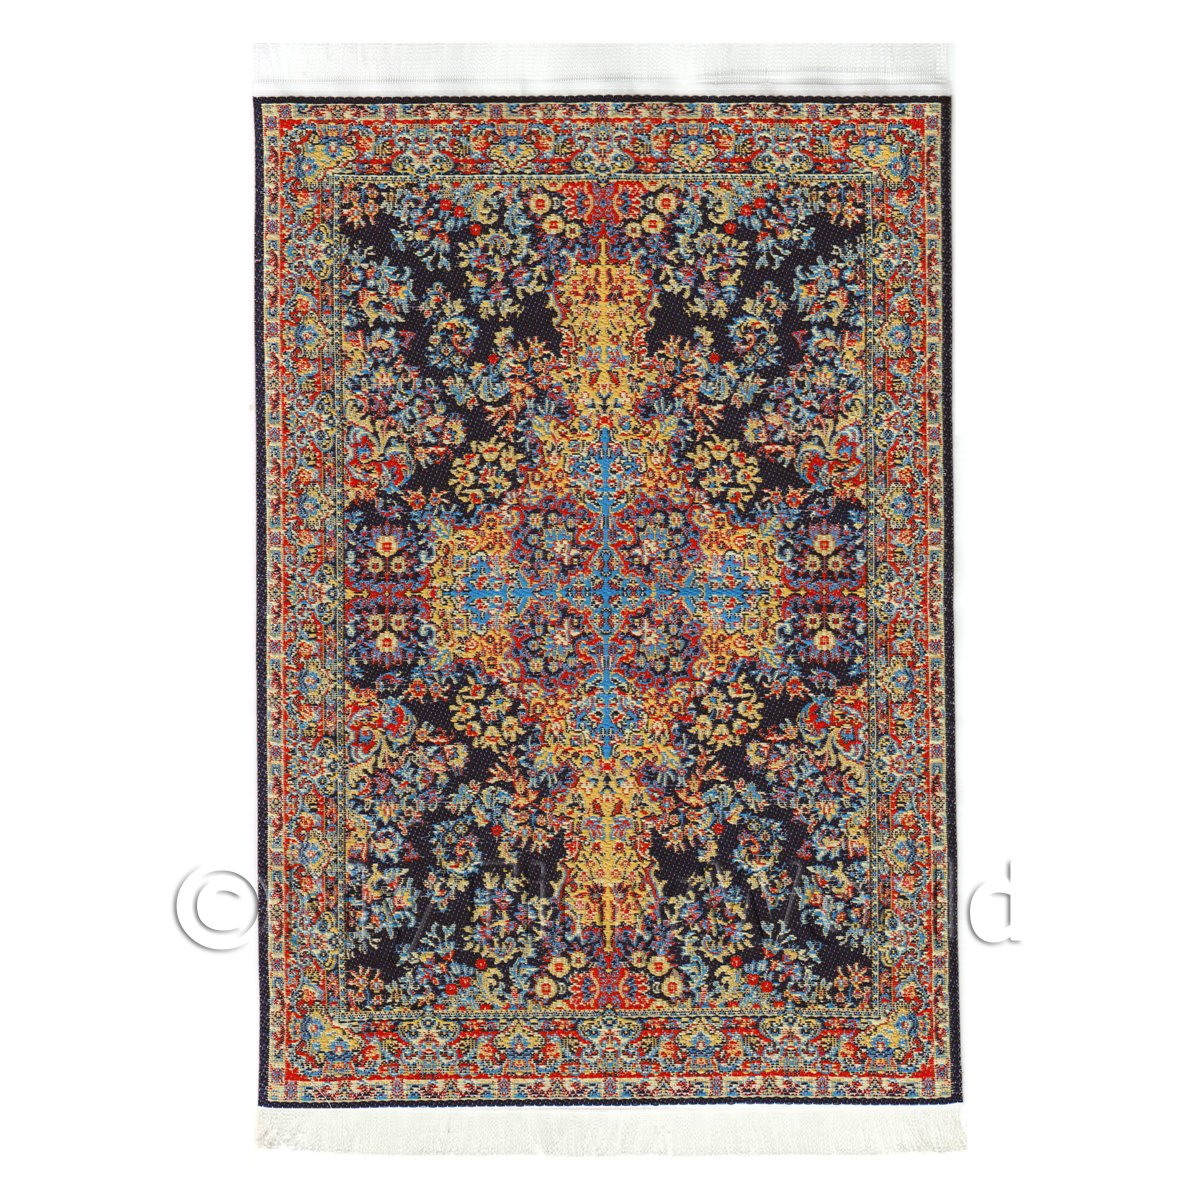 Dolls House Medium 16th Century Rectangular Carpet / Rug (16NM02)